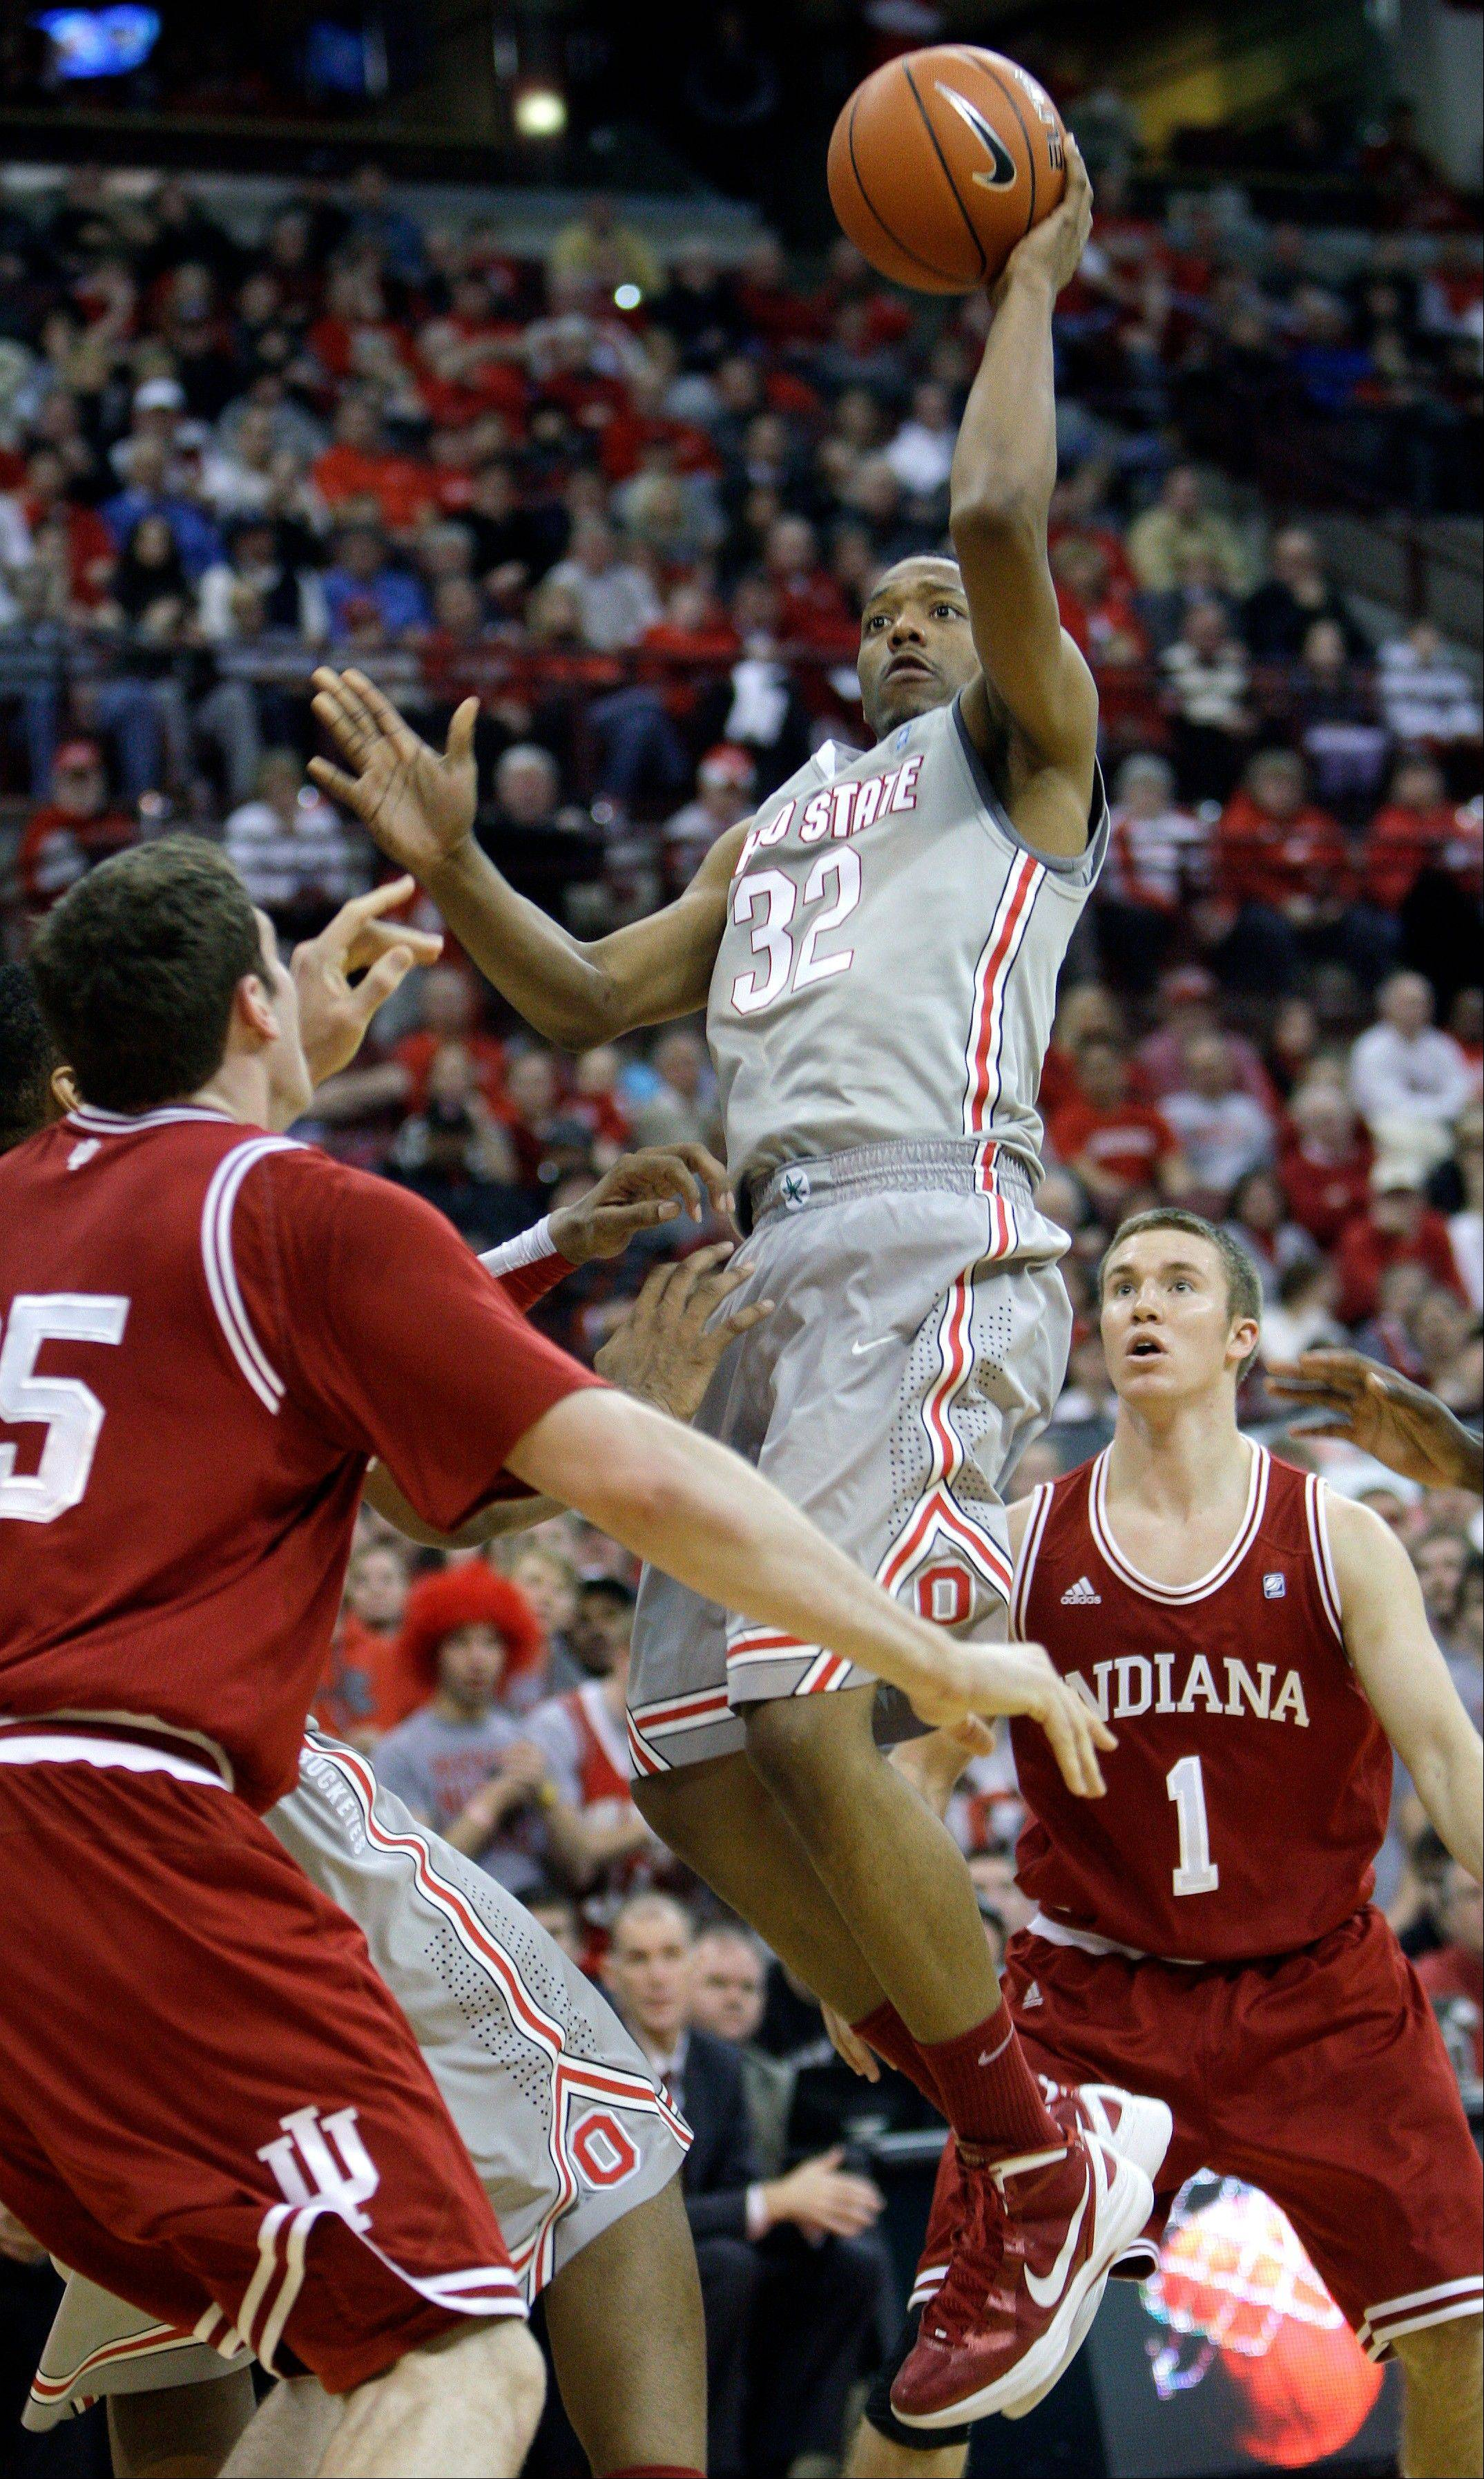 Ohio State's Lenzelle Smith, top, shoots between Indiana's Tom Pritchard, left, and Kory Barnett during the second half of a game Jan. 15, 2012, in Columbus, Ohio. Smith is one of three returning starters for the Buckeyes.